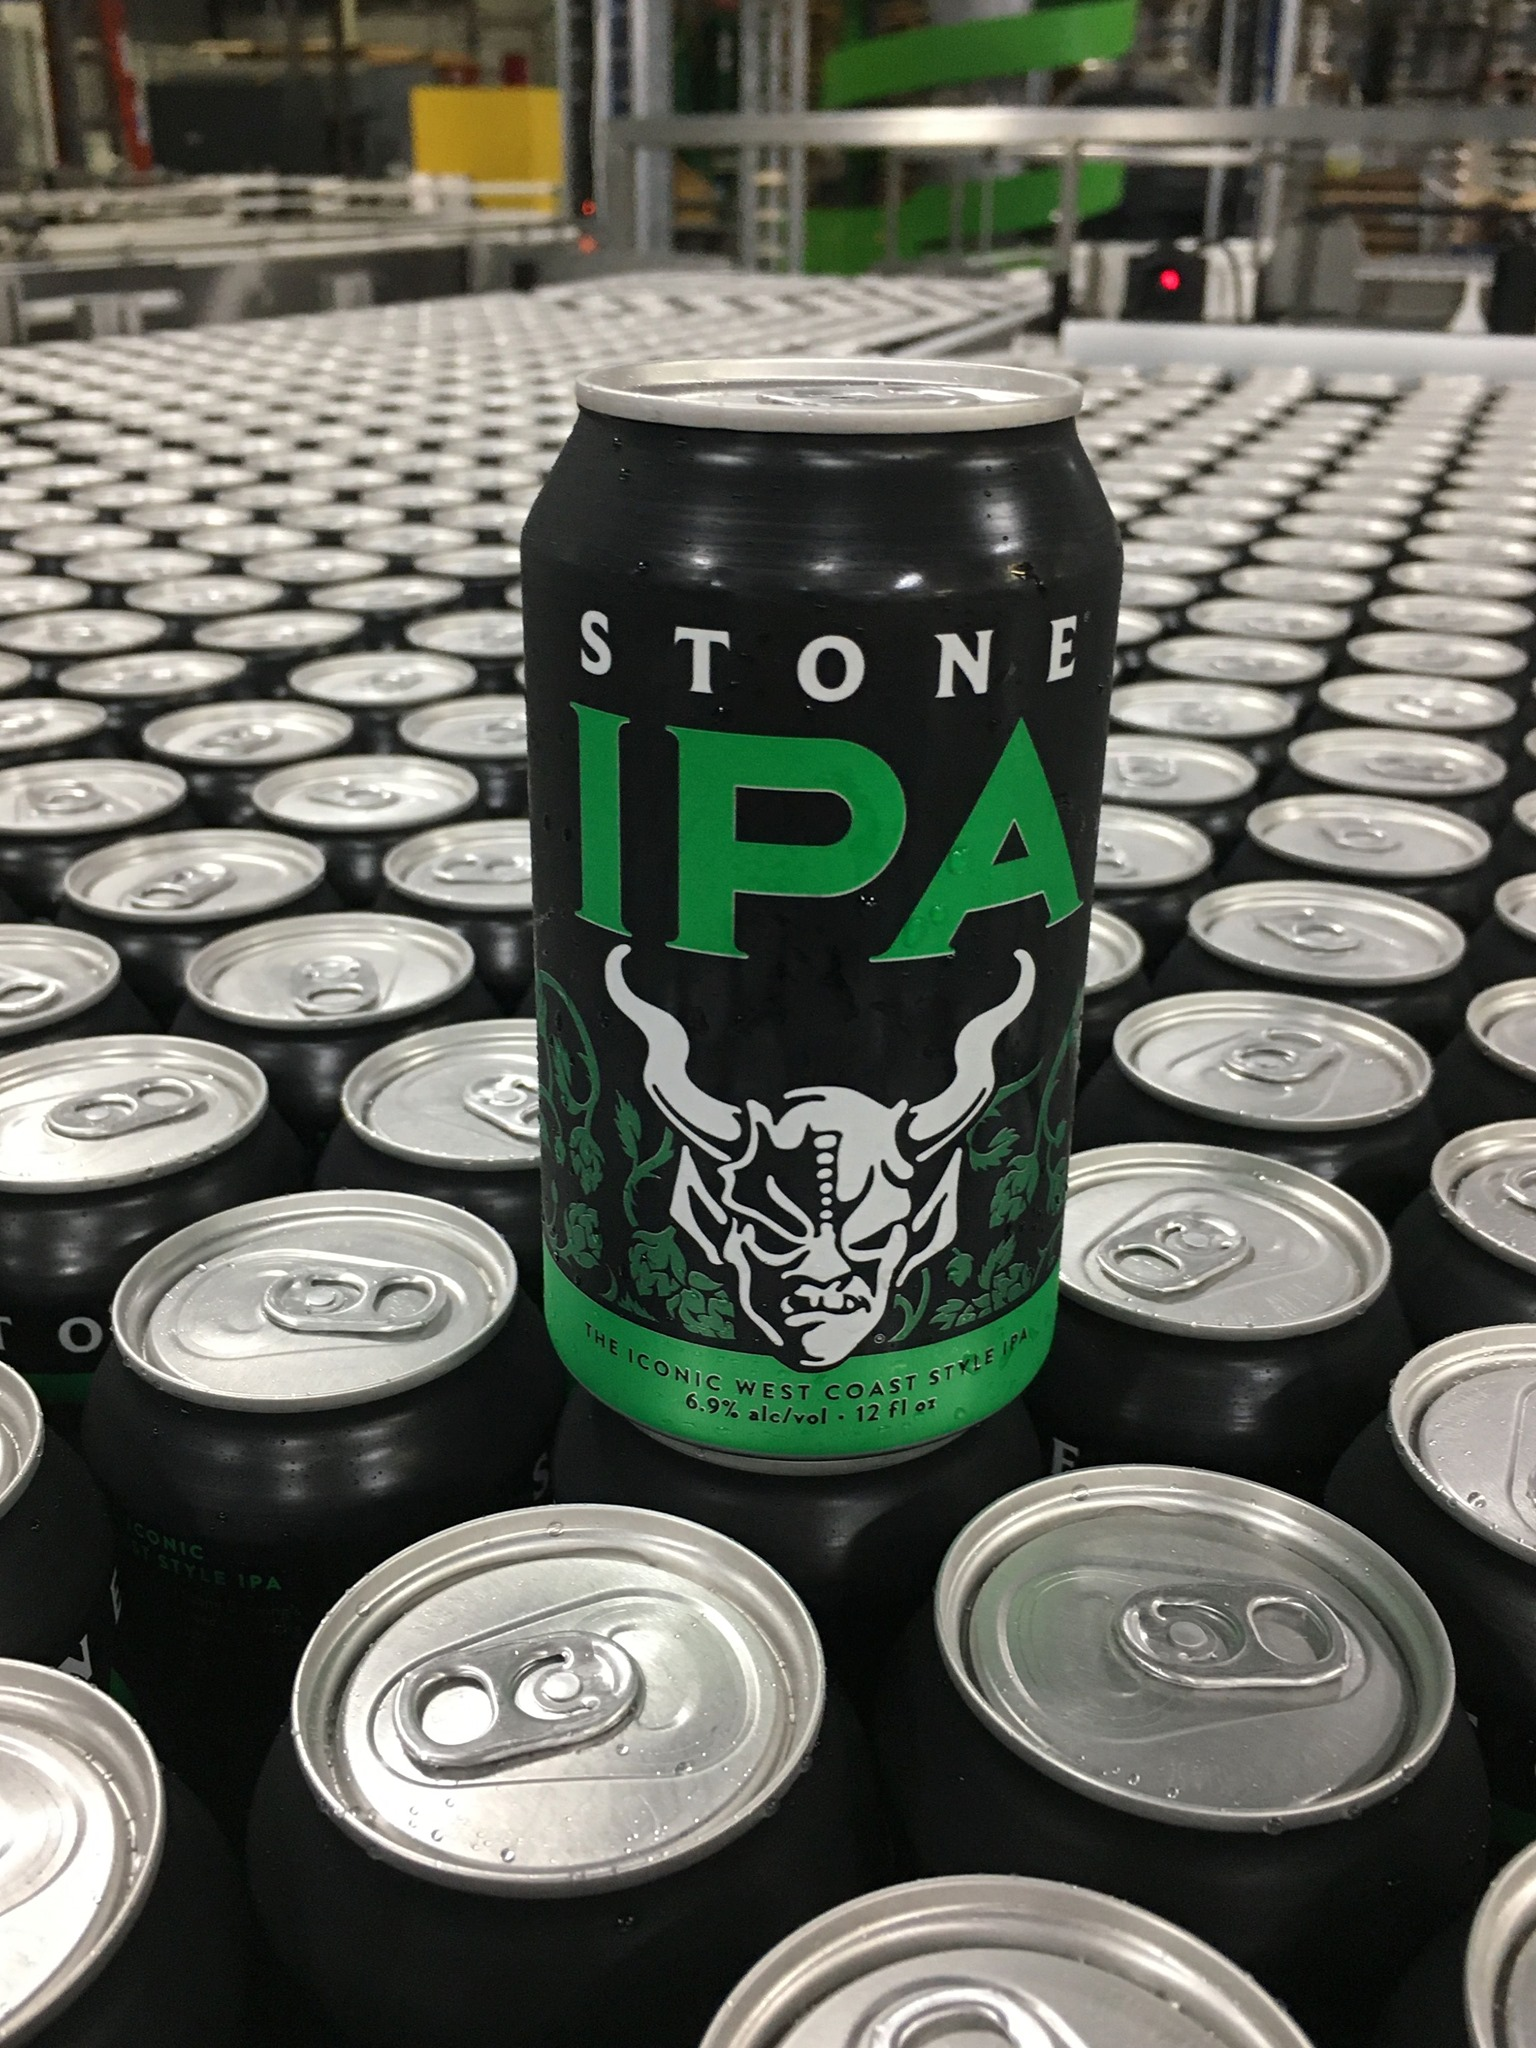 image of the classic Stone IPA courtesy of Stone Brewing Co.